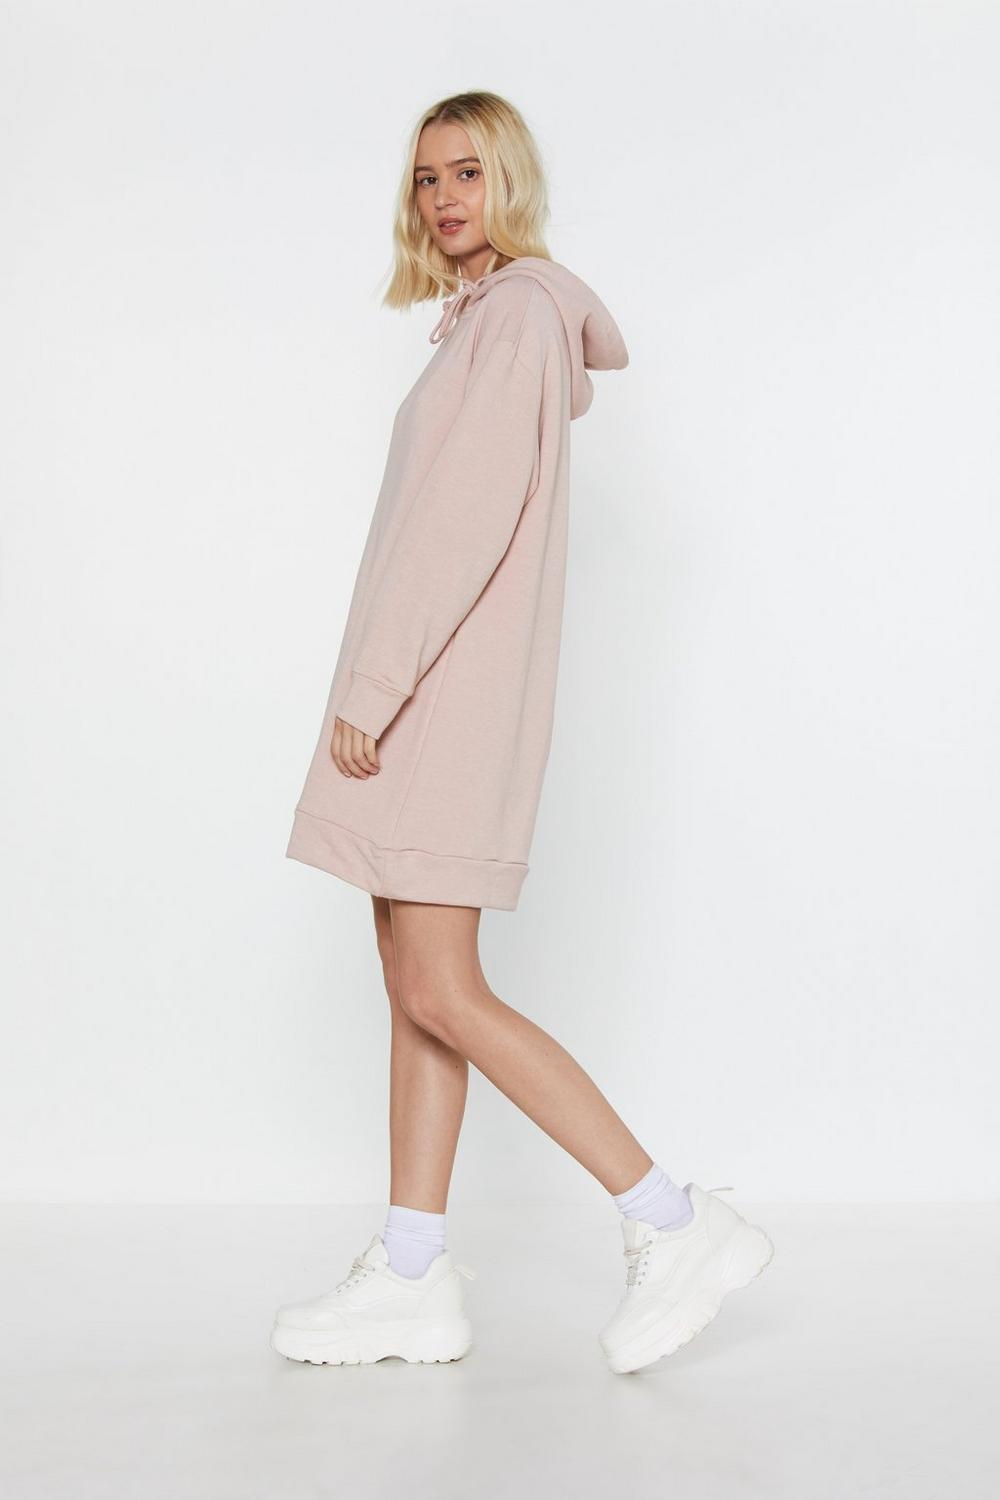 6f61fb02cd8d Womens Dusky pink Take It Slow Oversized Hooded Dress. Hover to zoom